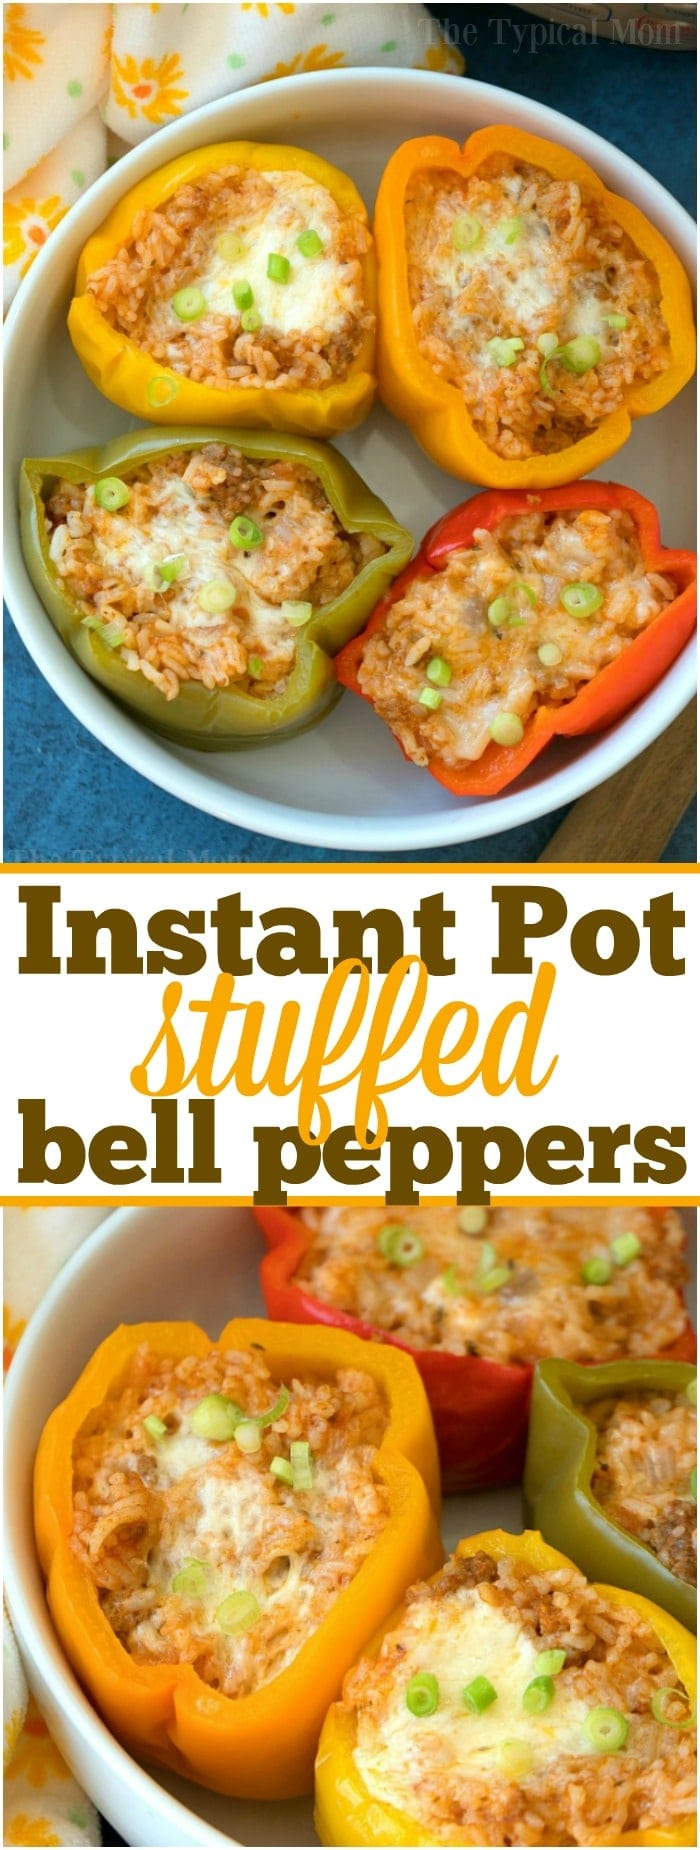 These easy Instant Pot stuffed peppers will be your favorite pressure cooker meal! Green peppers stuffed with cheesy ground beef and rice they're packed with flavor and will bring you back to your childhood! The old fashioned recipe you remember is much quicker in your pressure cooker now! #instantpot #pressurecooker #stuffedpeppers #stuffed #green #peppers #easy #crockpotexpress #easy